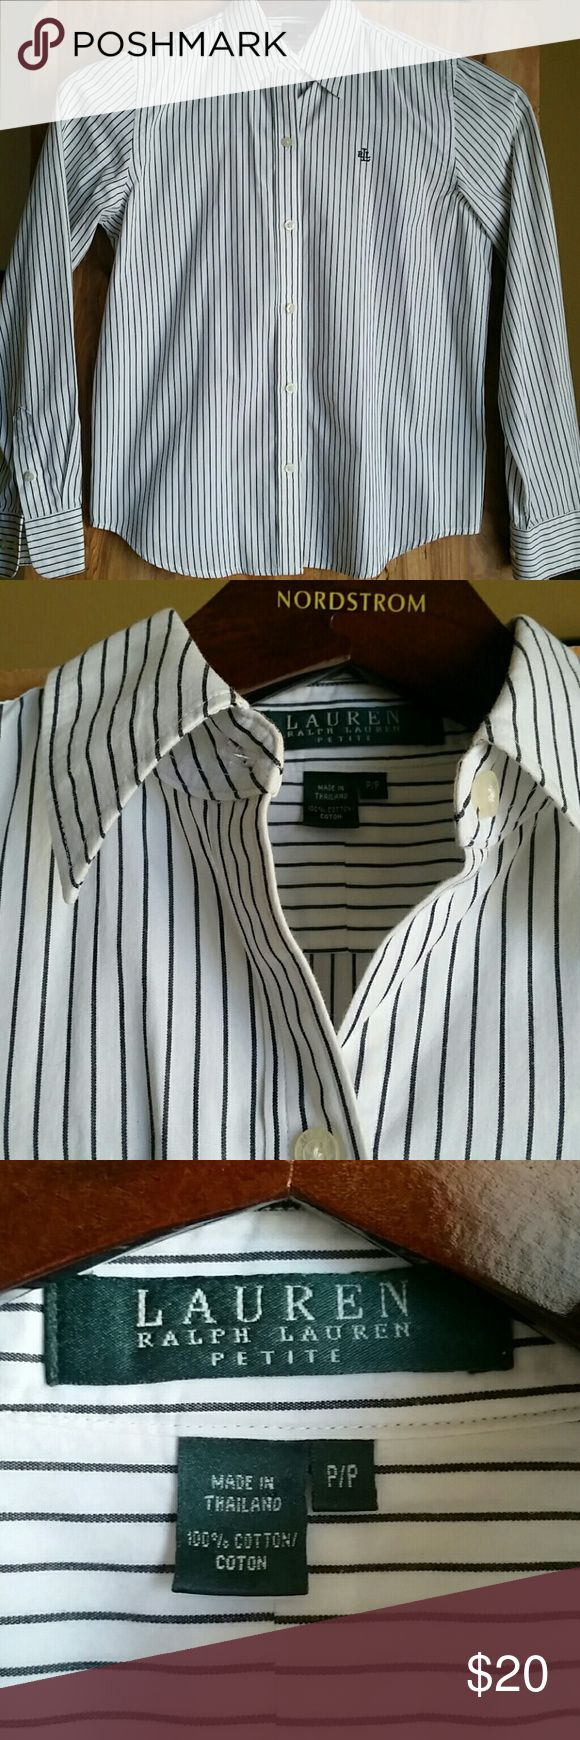 LAUREN RALPH LAUREN PETITE Shirt 100% cotton. P/P Lauren Ralph Lauren Tops Button Down Shirts